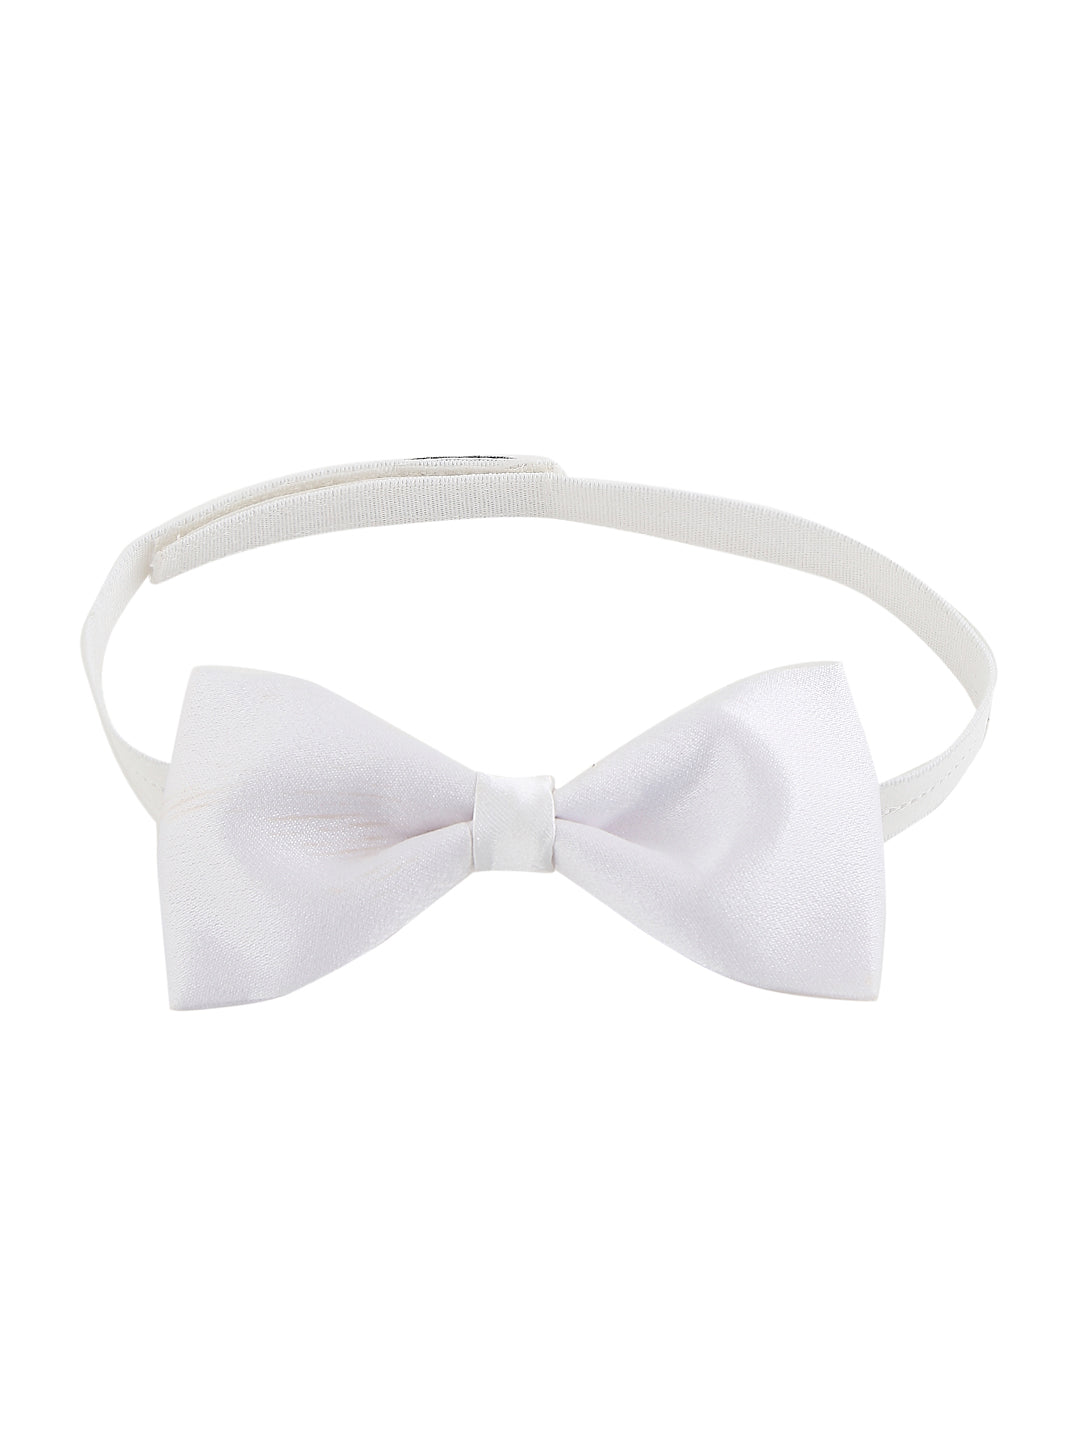 Zido Bow Tie for Men BPL069